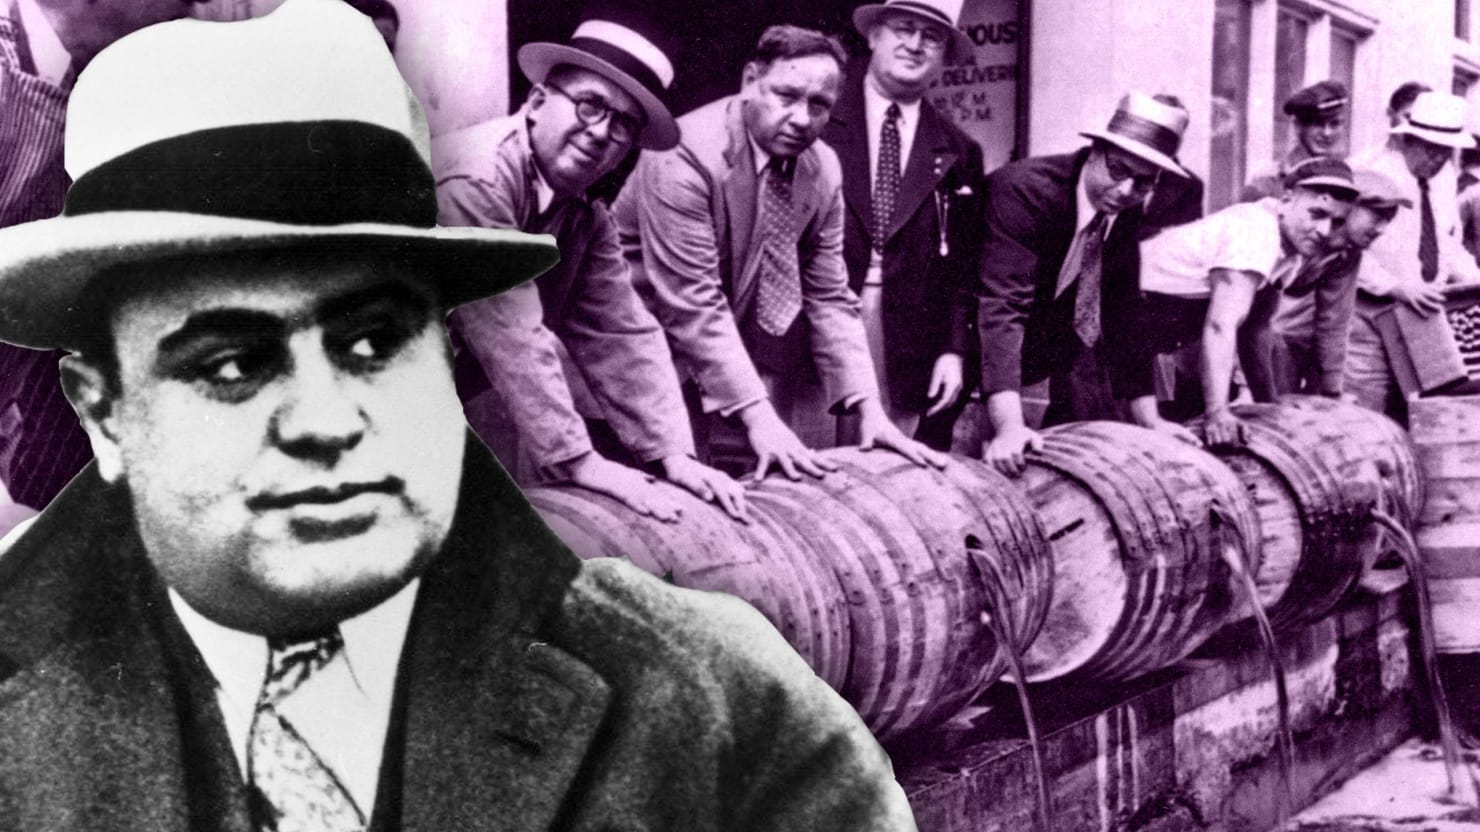 prohibition  al capone  inadvertent hero 1480 x 832 · jpeg